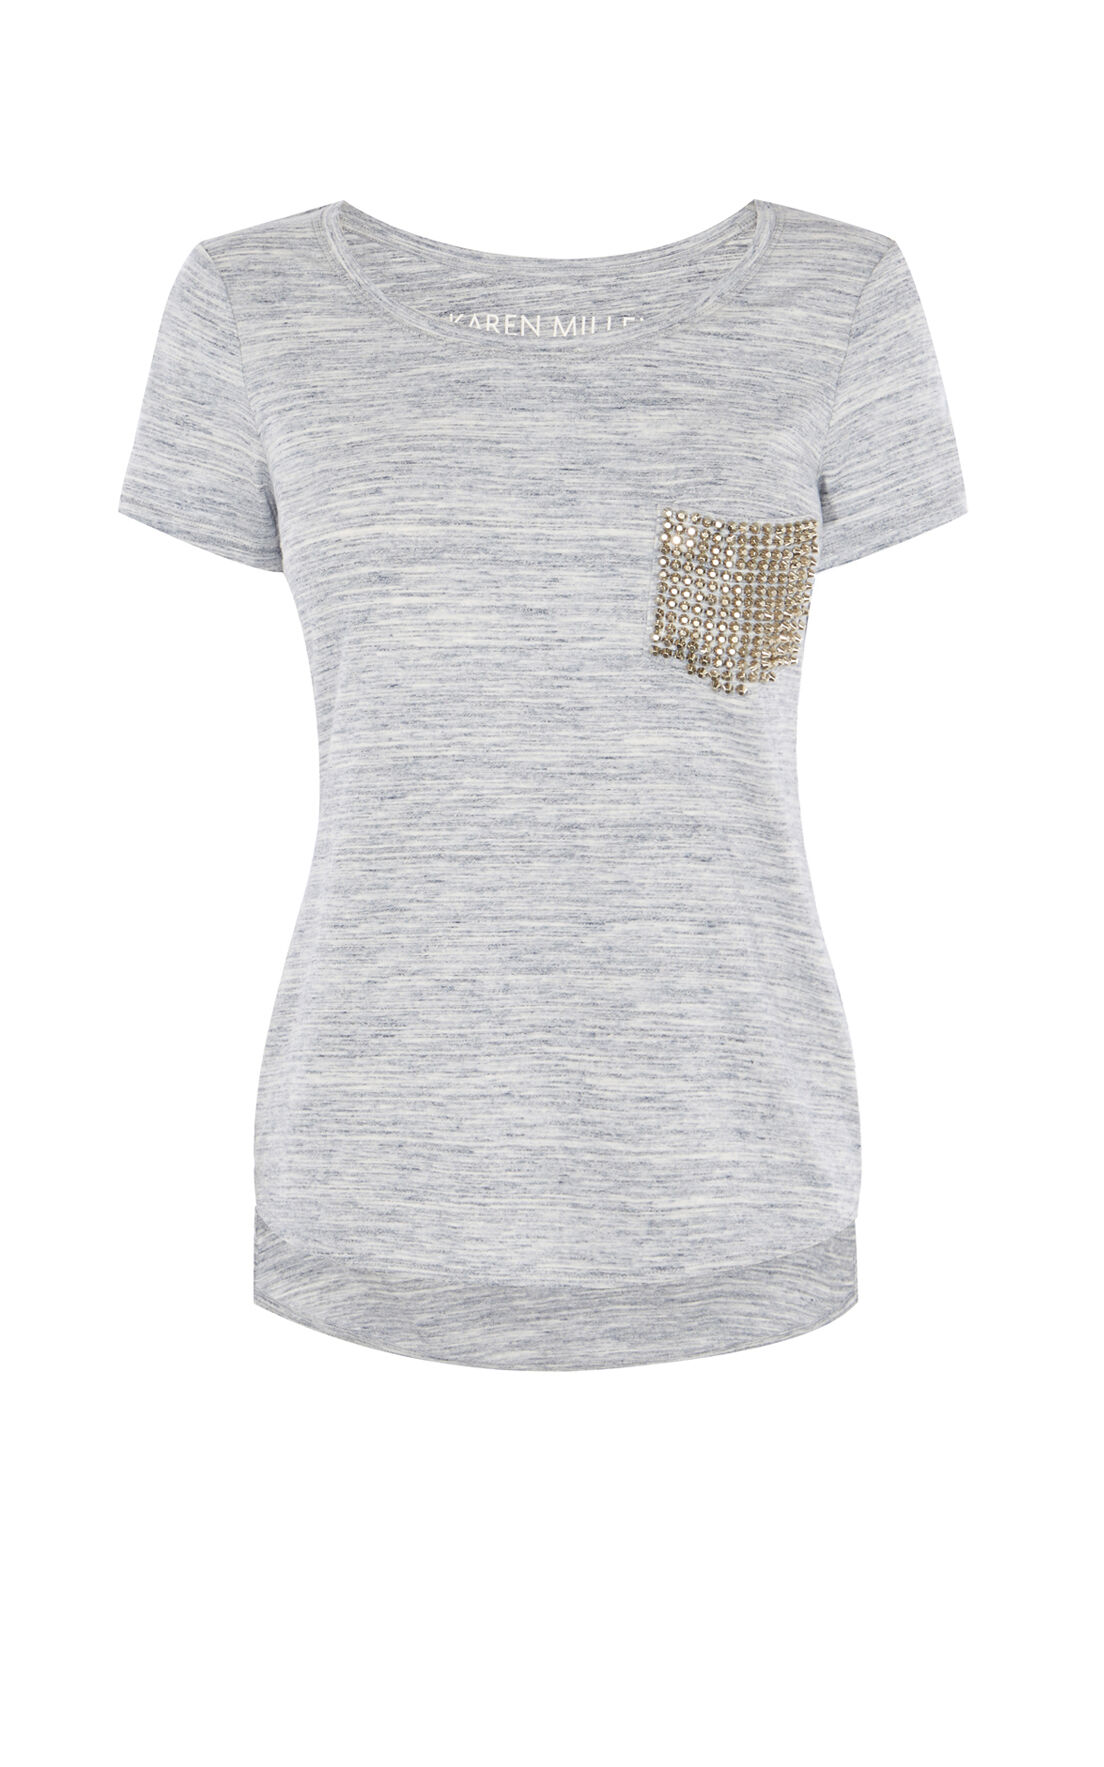 Karen Millen, STUDDED POCKET T-SHIRT Pale Blue 0